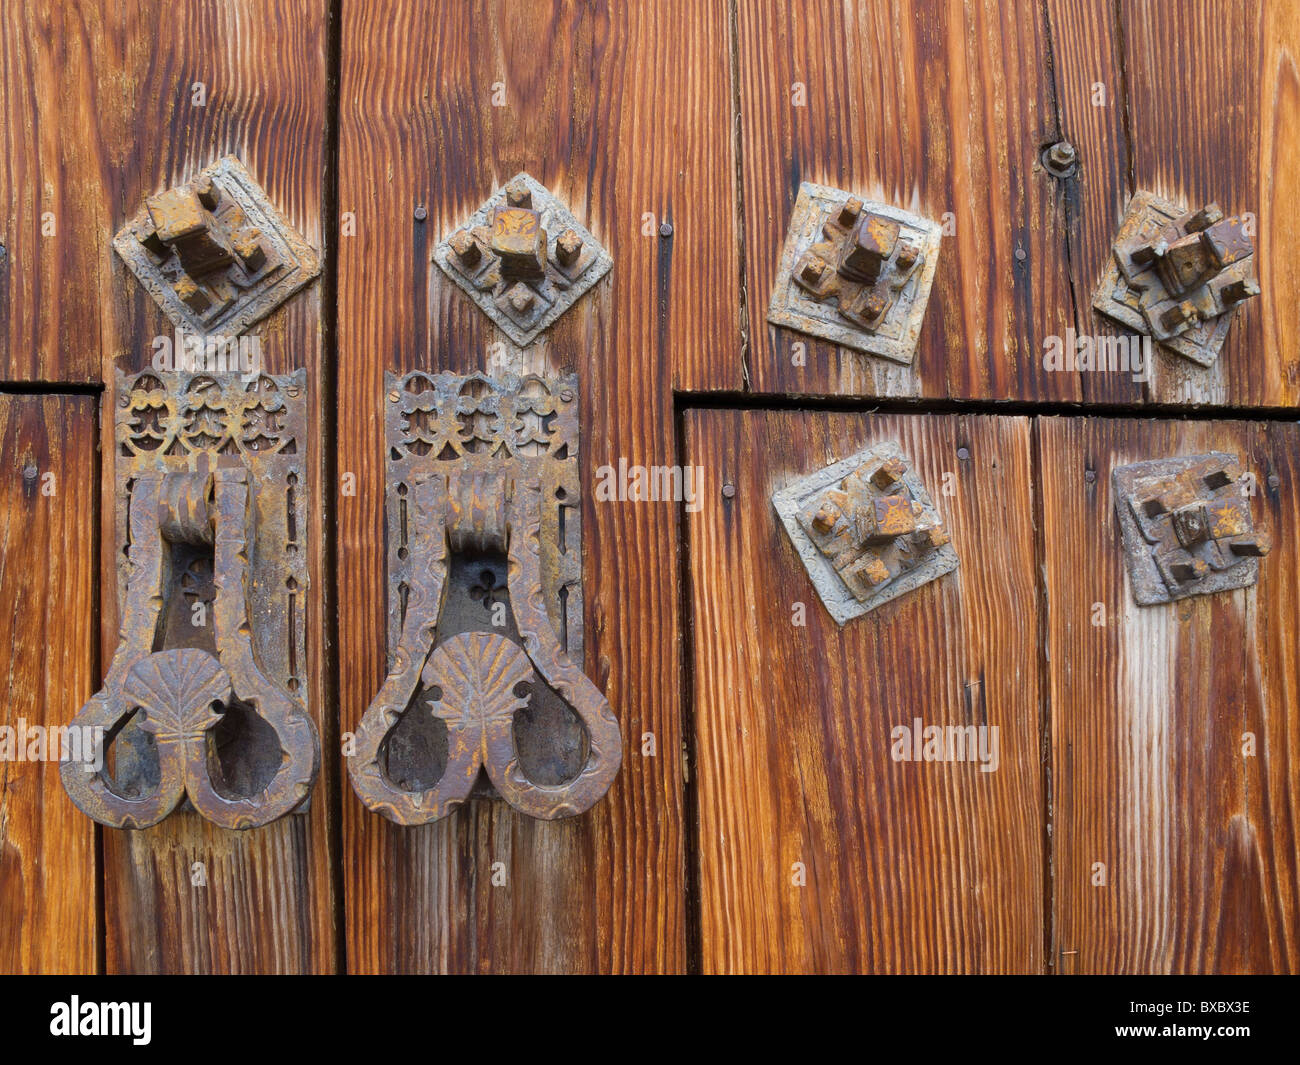 Timber church door with handles and fasteners. - Stock Image